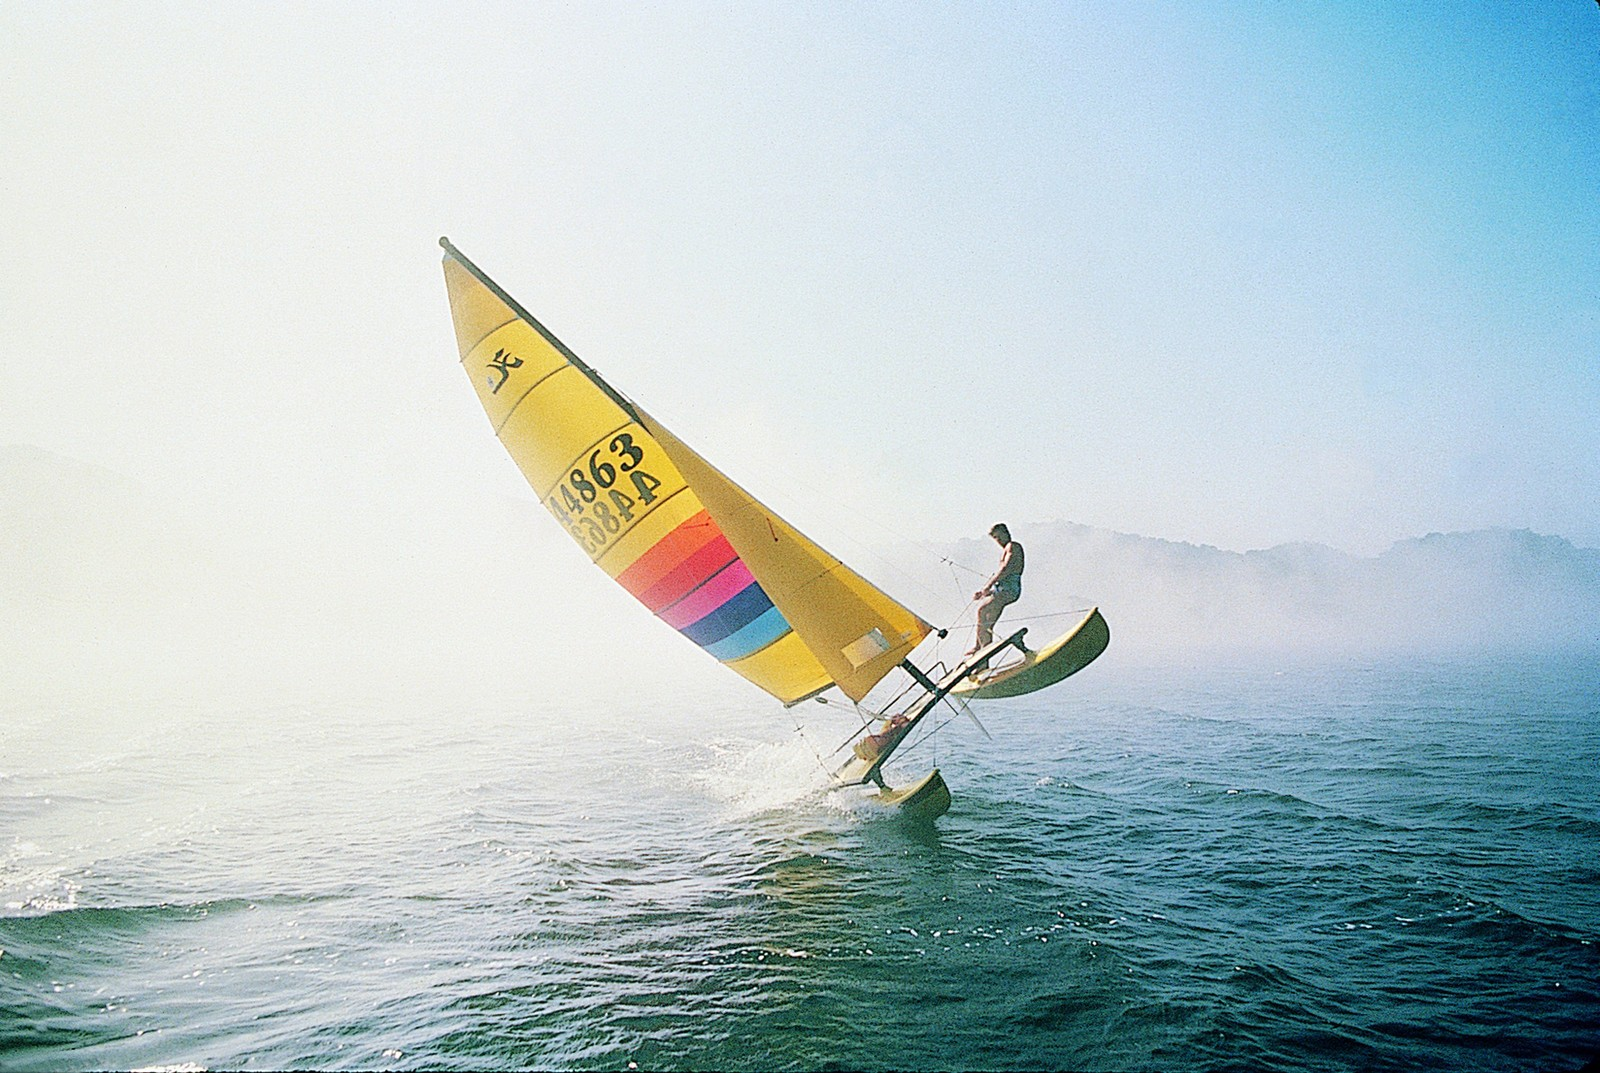 Hobie 14 (Photo Credit: Pierrick Contin)